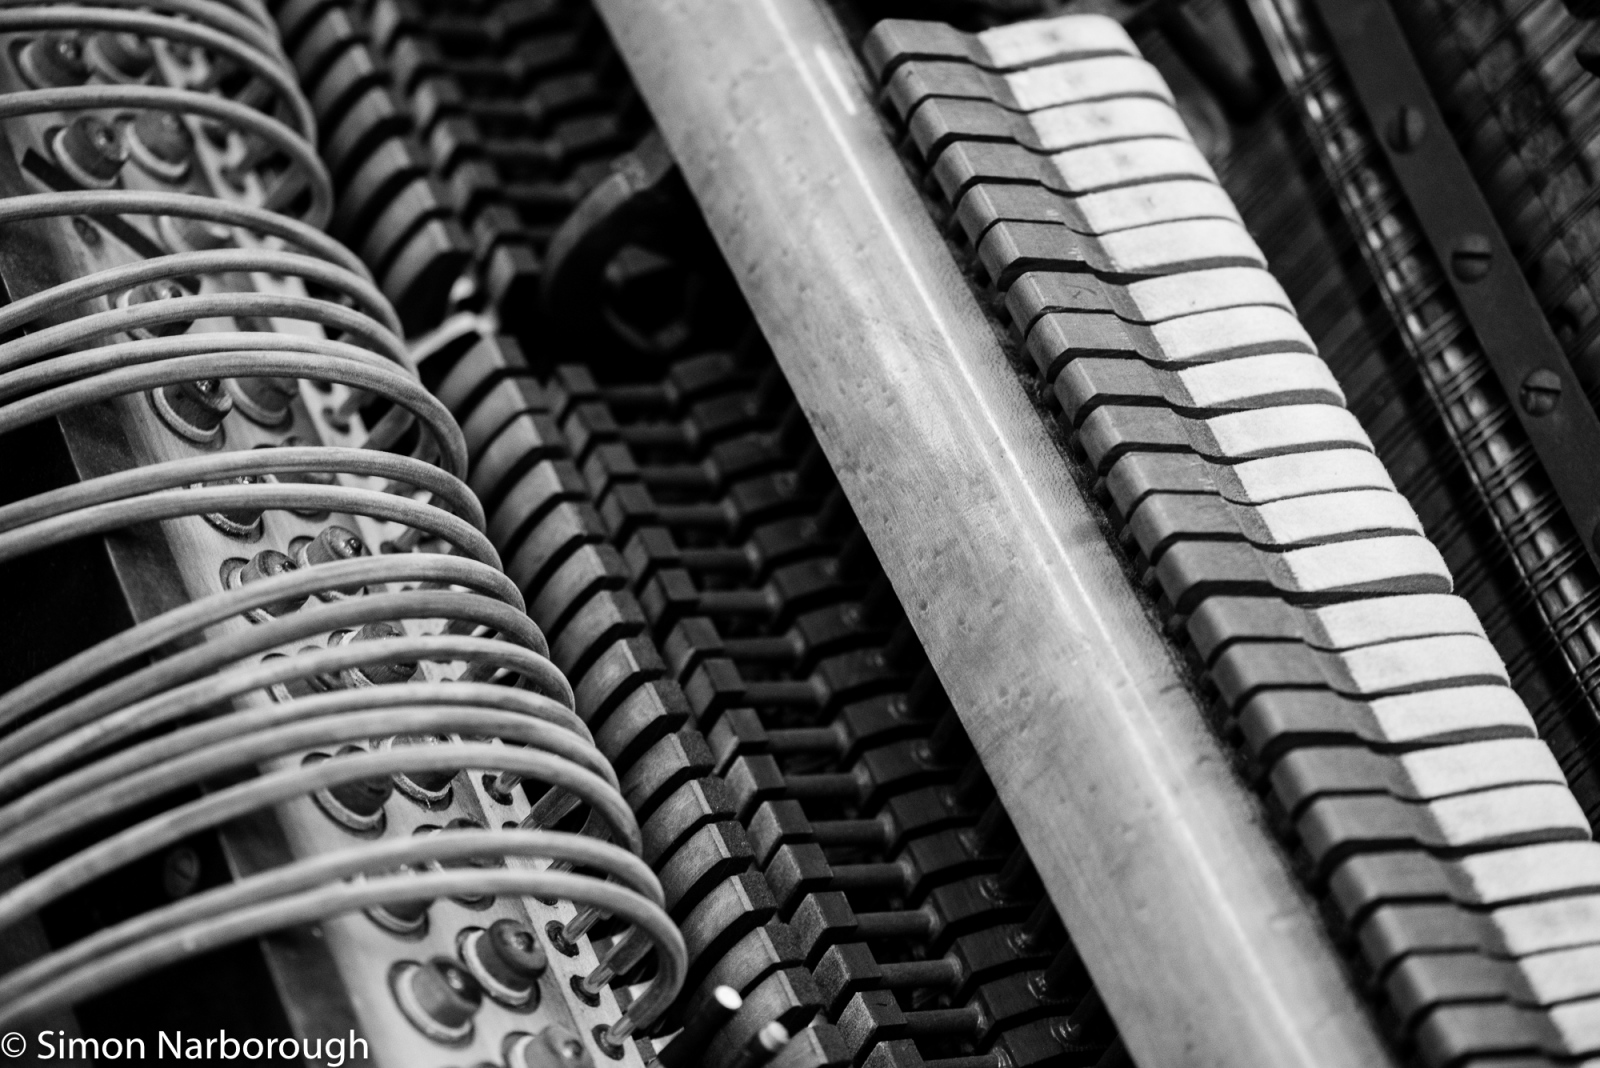 The inner workings of a player piano: a spaghetti-like mass of airtubes, strings and pumps.